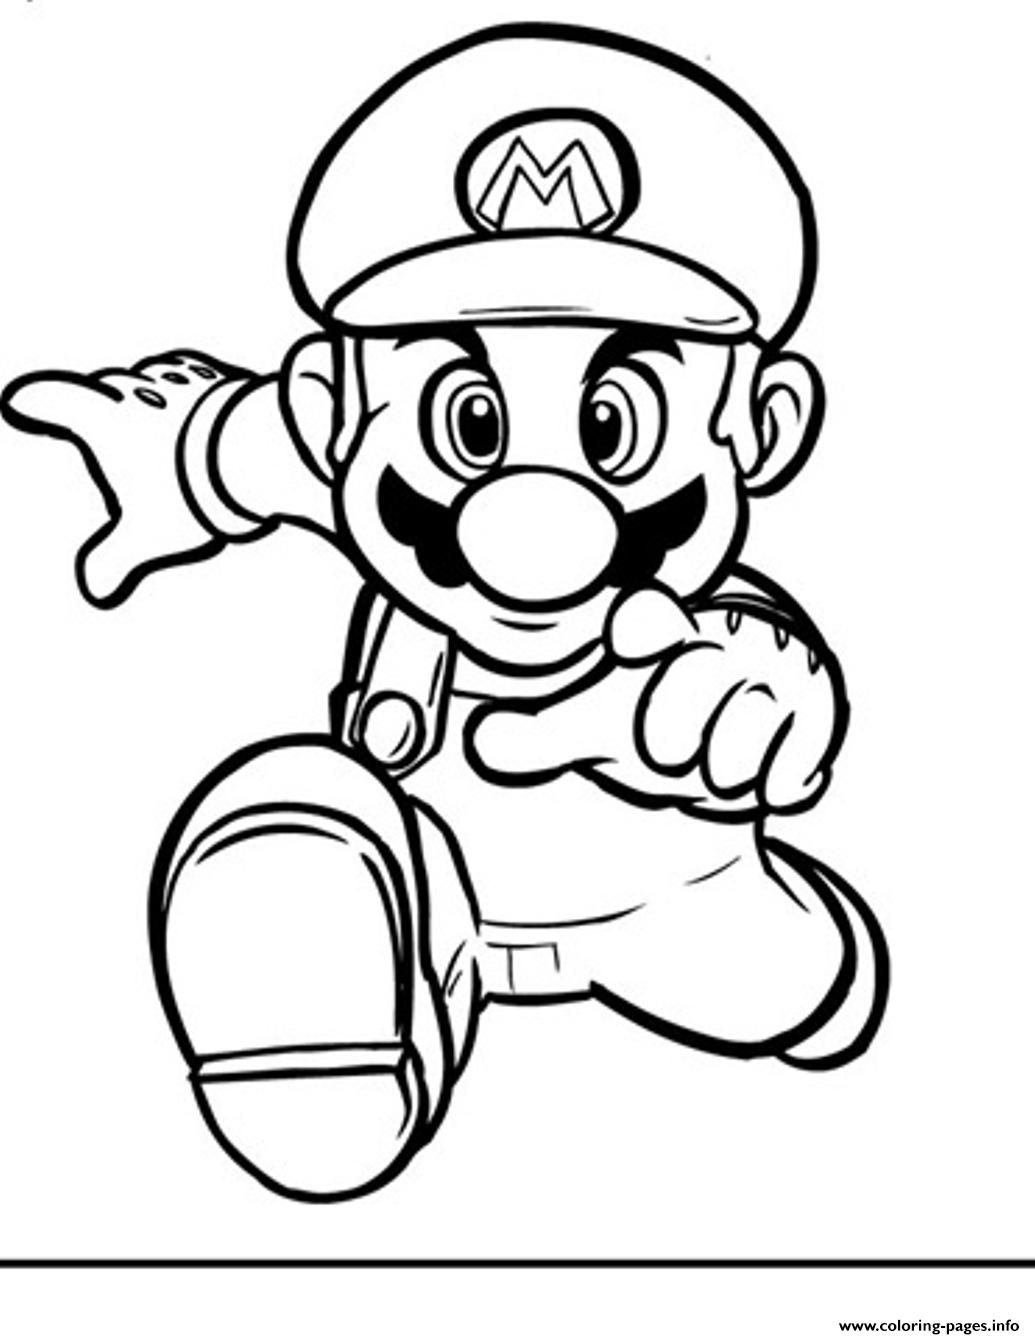 Print running mario bros s2394 coloring pages | MARIO | Pinterest